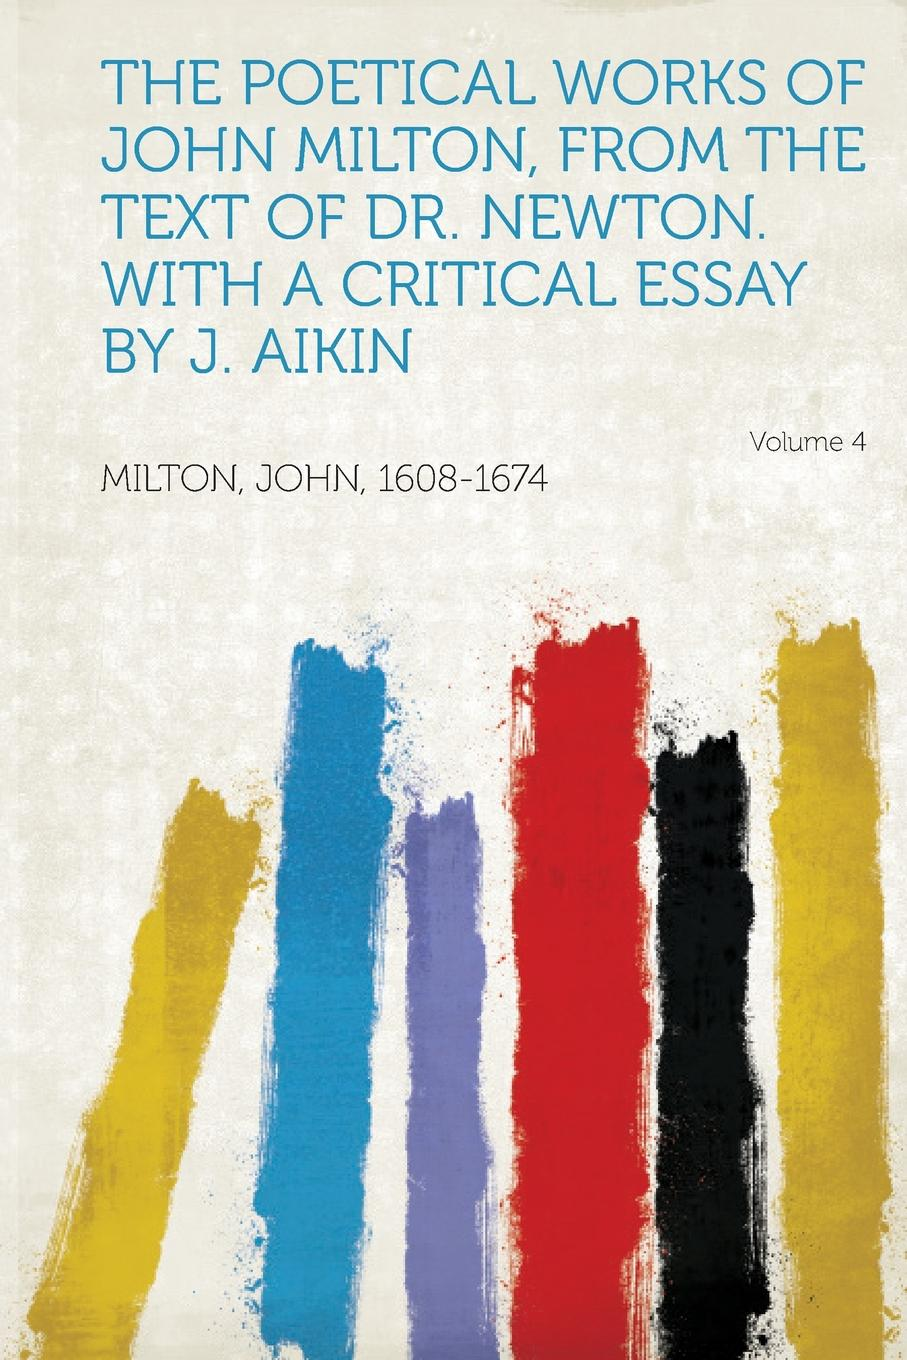 John Milton The Poetical Works of John Milton, from the Text of Dr. Newton. with a Critical Essay by J. Aikin Volume 4